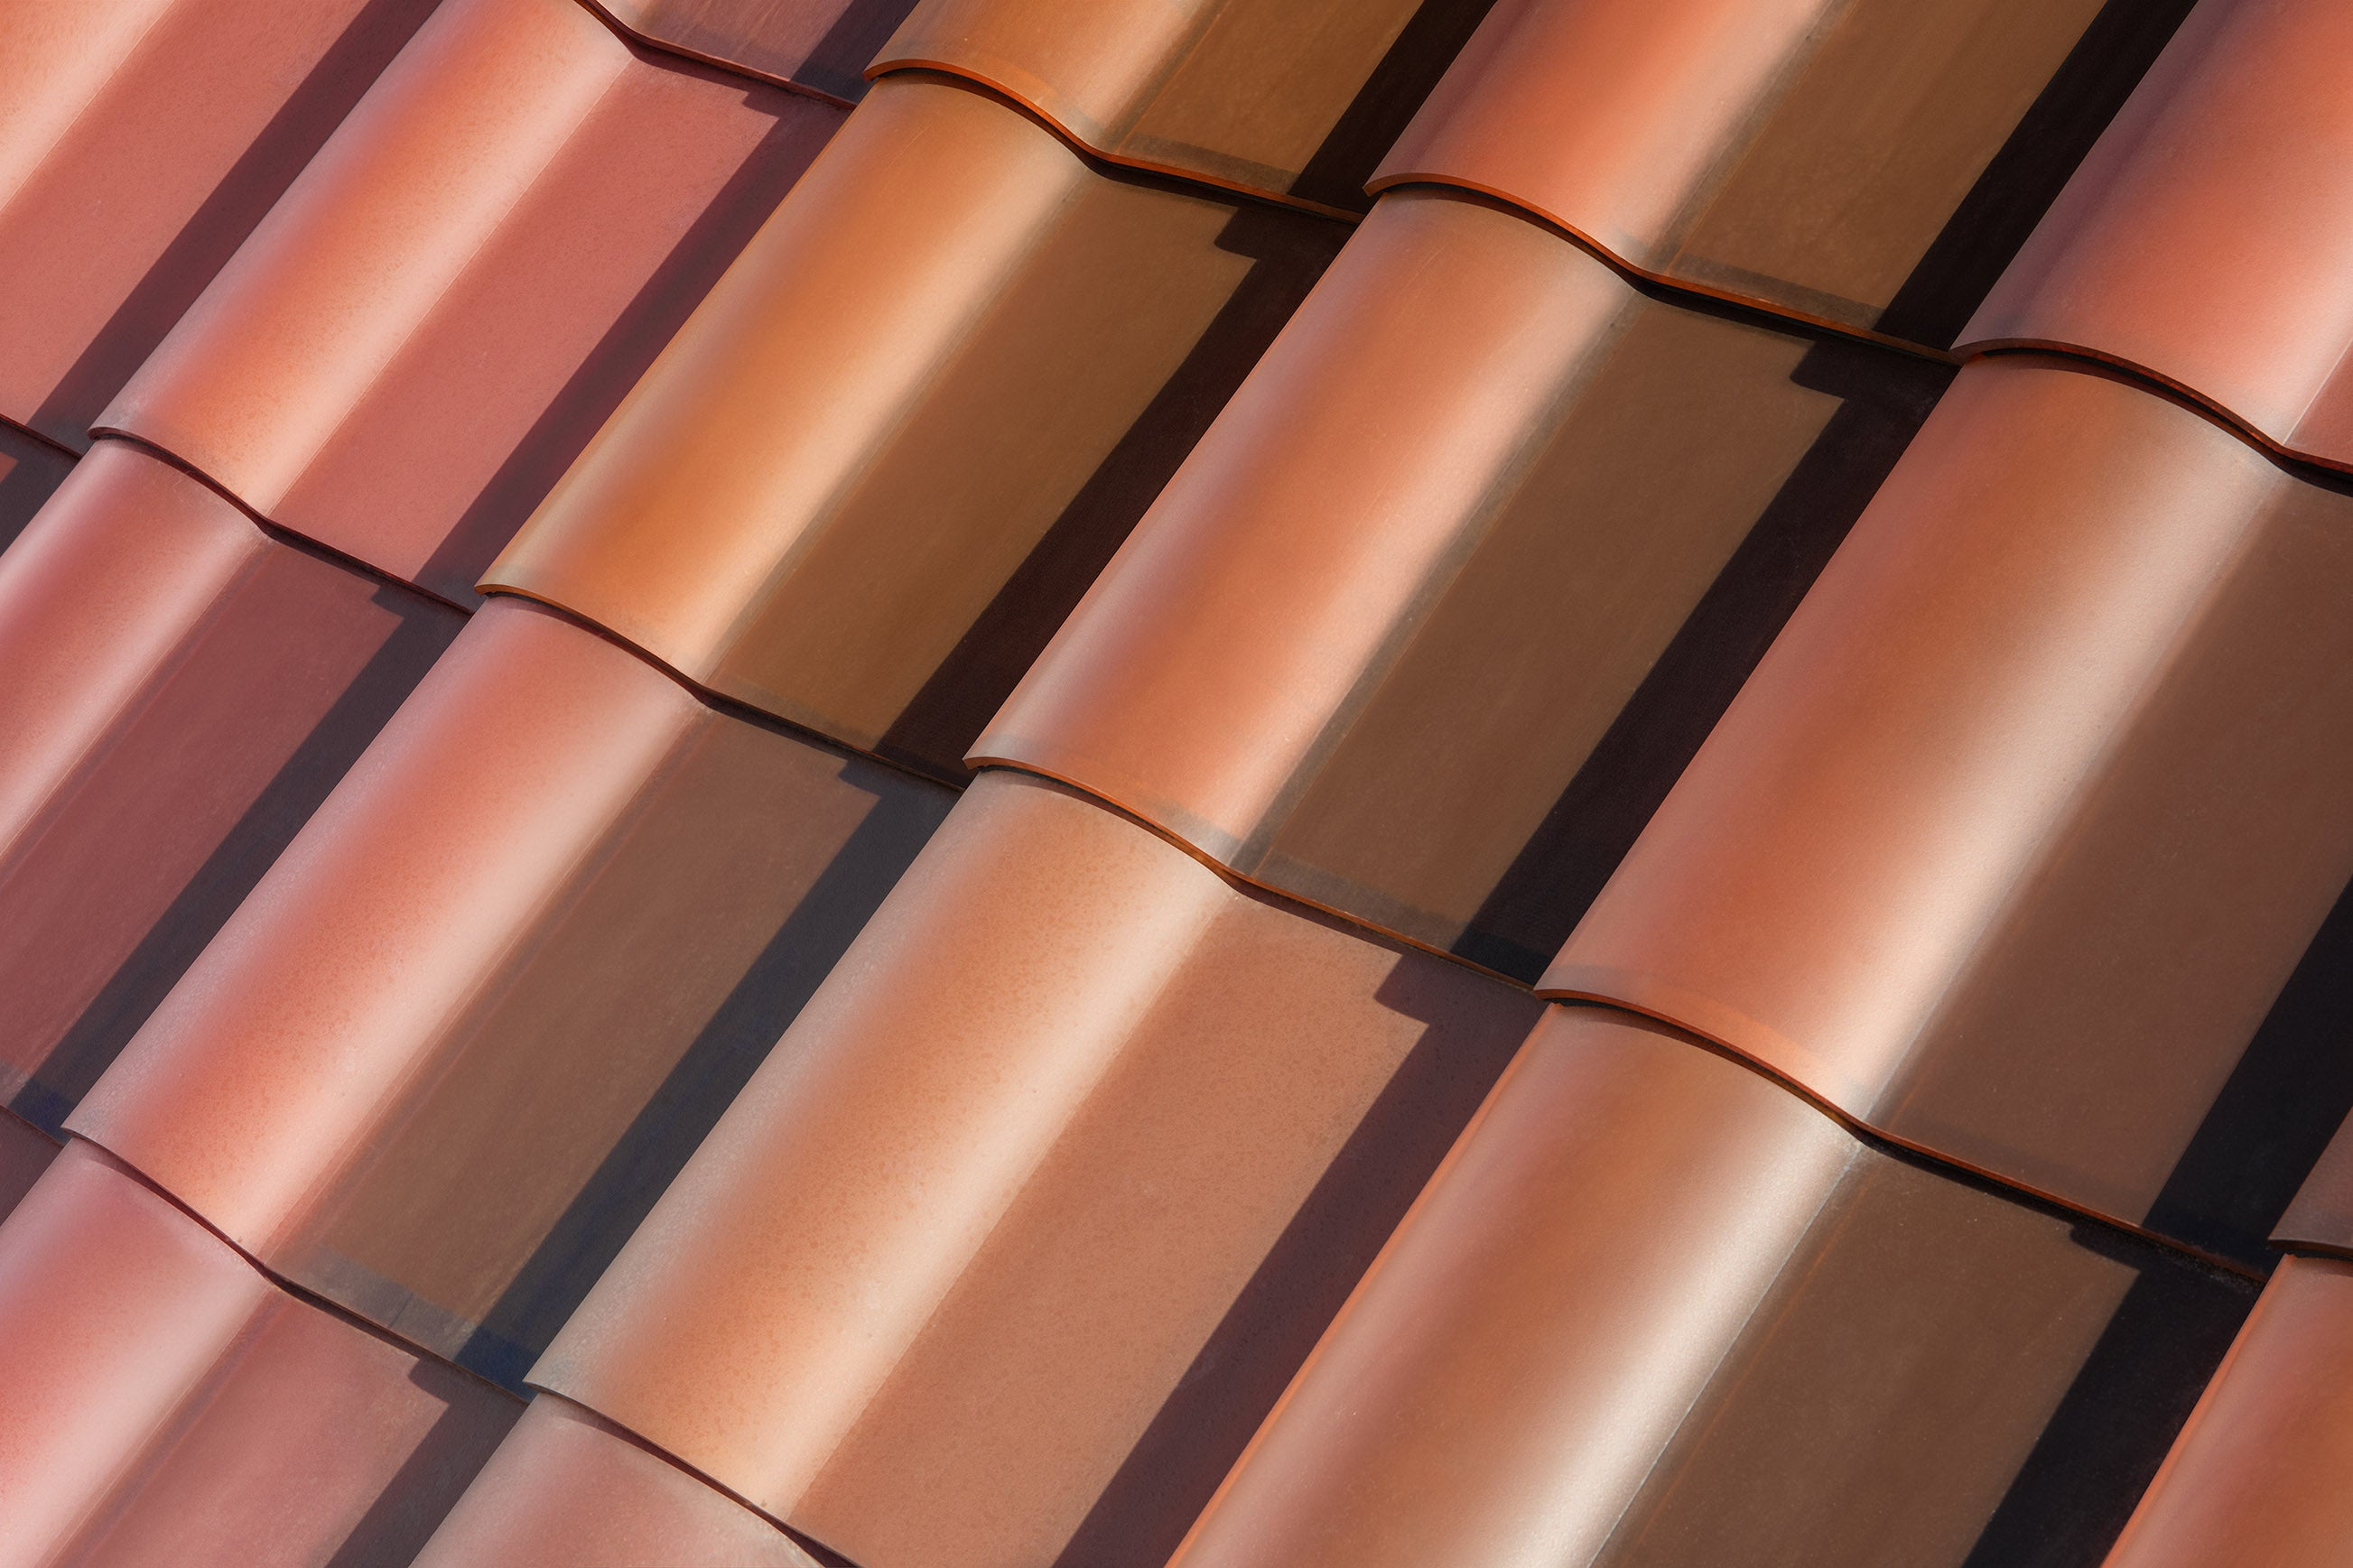 Will Tesla's Tiles Finally Give Solar Shingles Their Day in the Sun